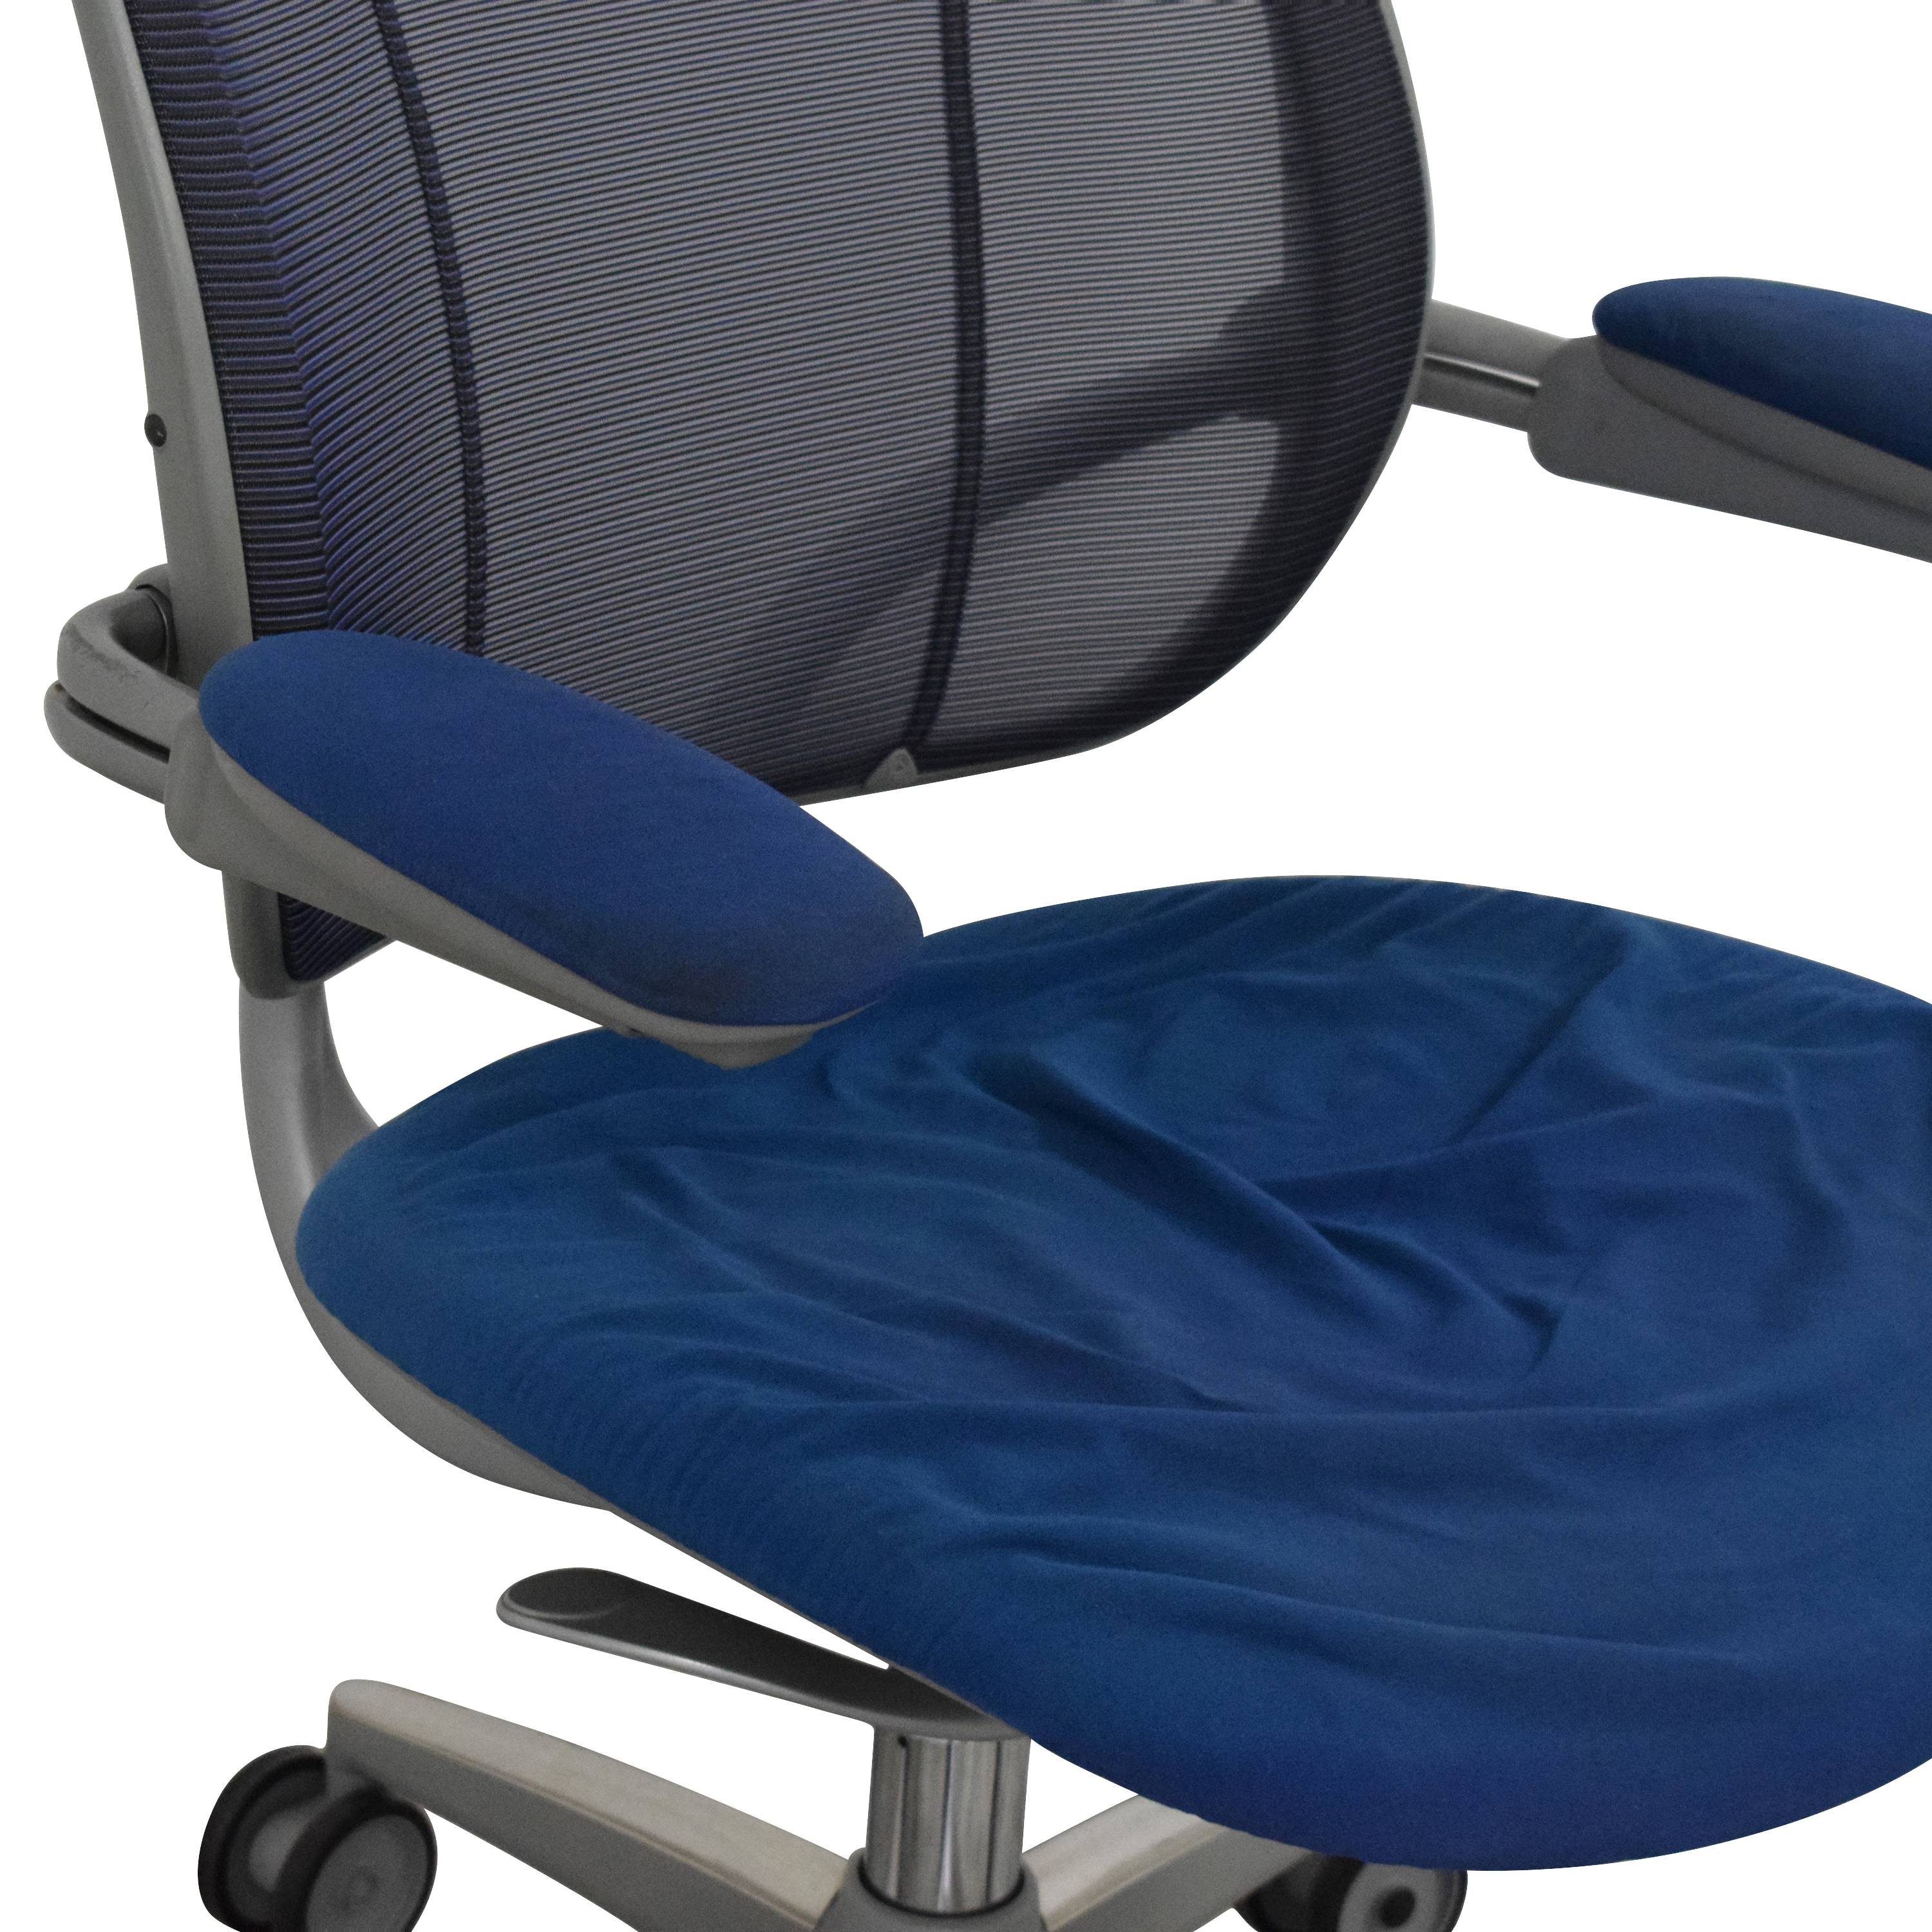 Humanscale Humanscale Liberty Swivel Chair Home Office Chairs